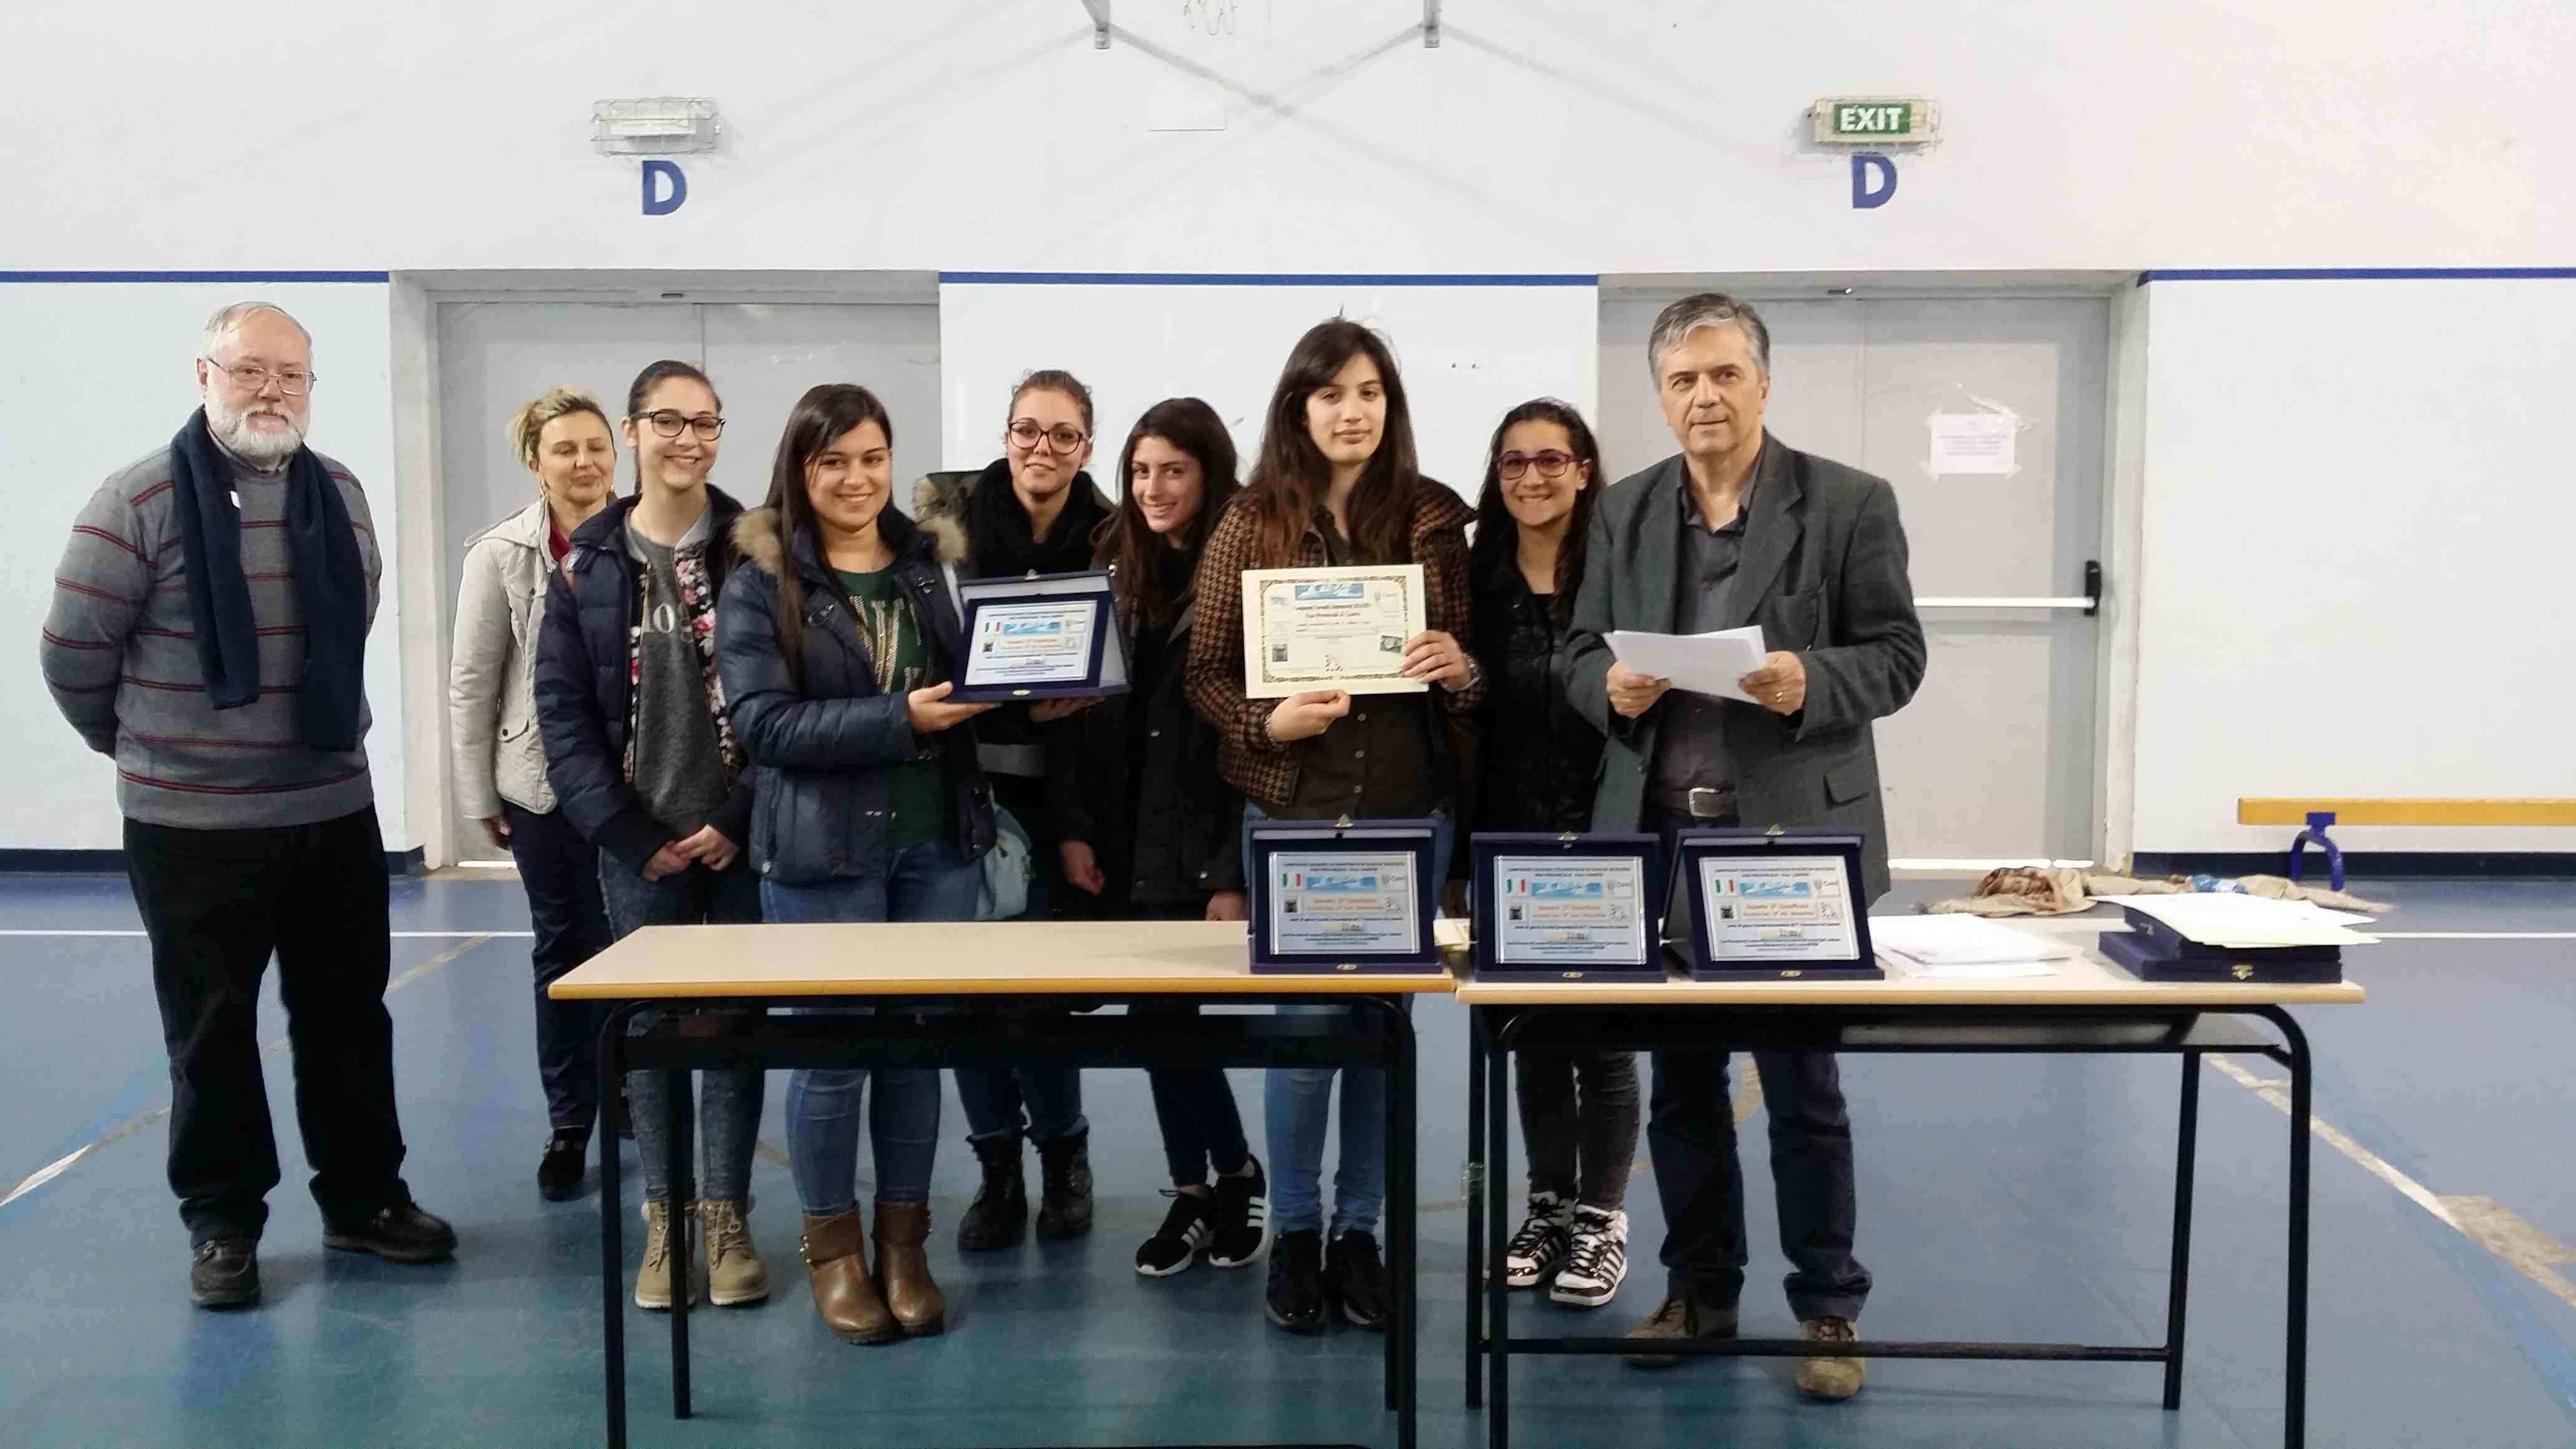 1 Classificata Liceo Scientifico S. Pizzi Cat. Sec. II° Allievi Femminili CAPUA